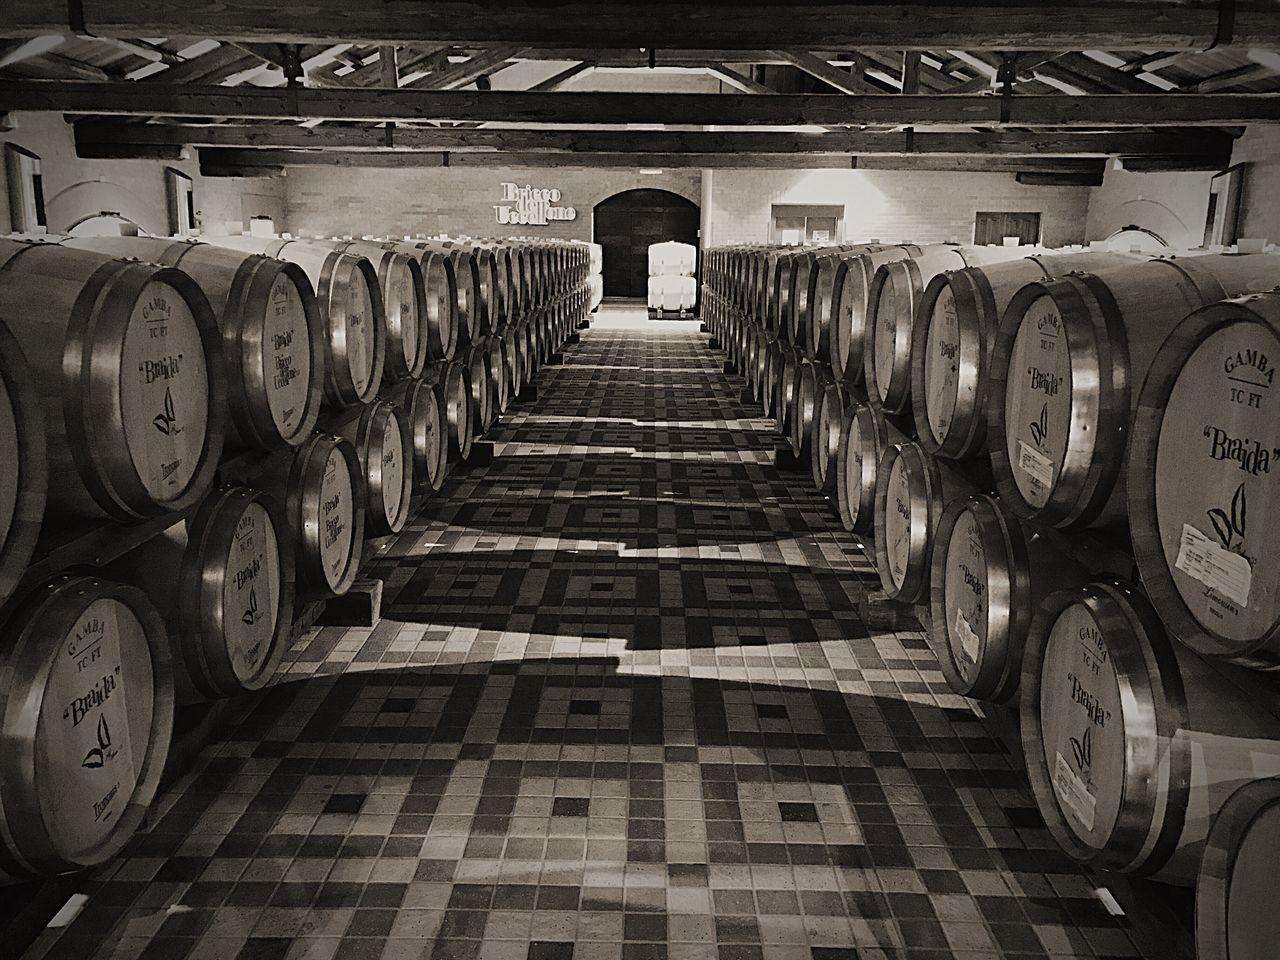 Winemaking Cellar Wine Winery Wine Cellar Distillery Alcohol Distillation Botti Barriques Piemonte Cantina Itay EyeEm Best Shots EyeEm Gallery EyeEm Best Edits EyeEm Black And White Blackandwhite Geometric Shape Geometry Square Wine Cask Autumn